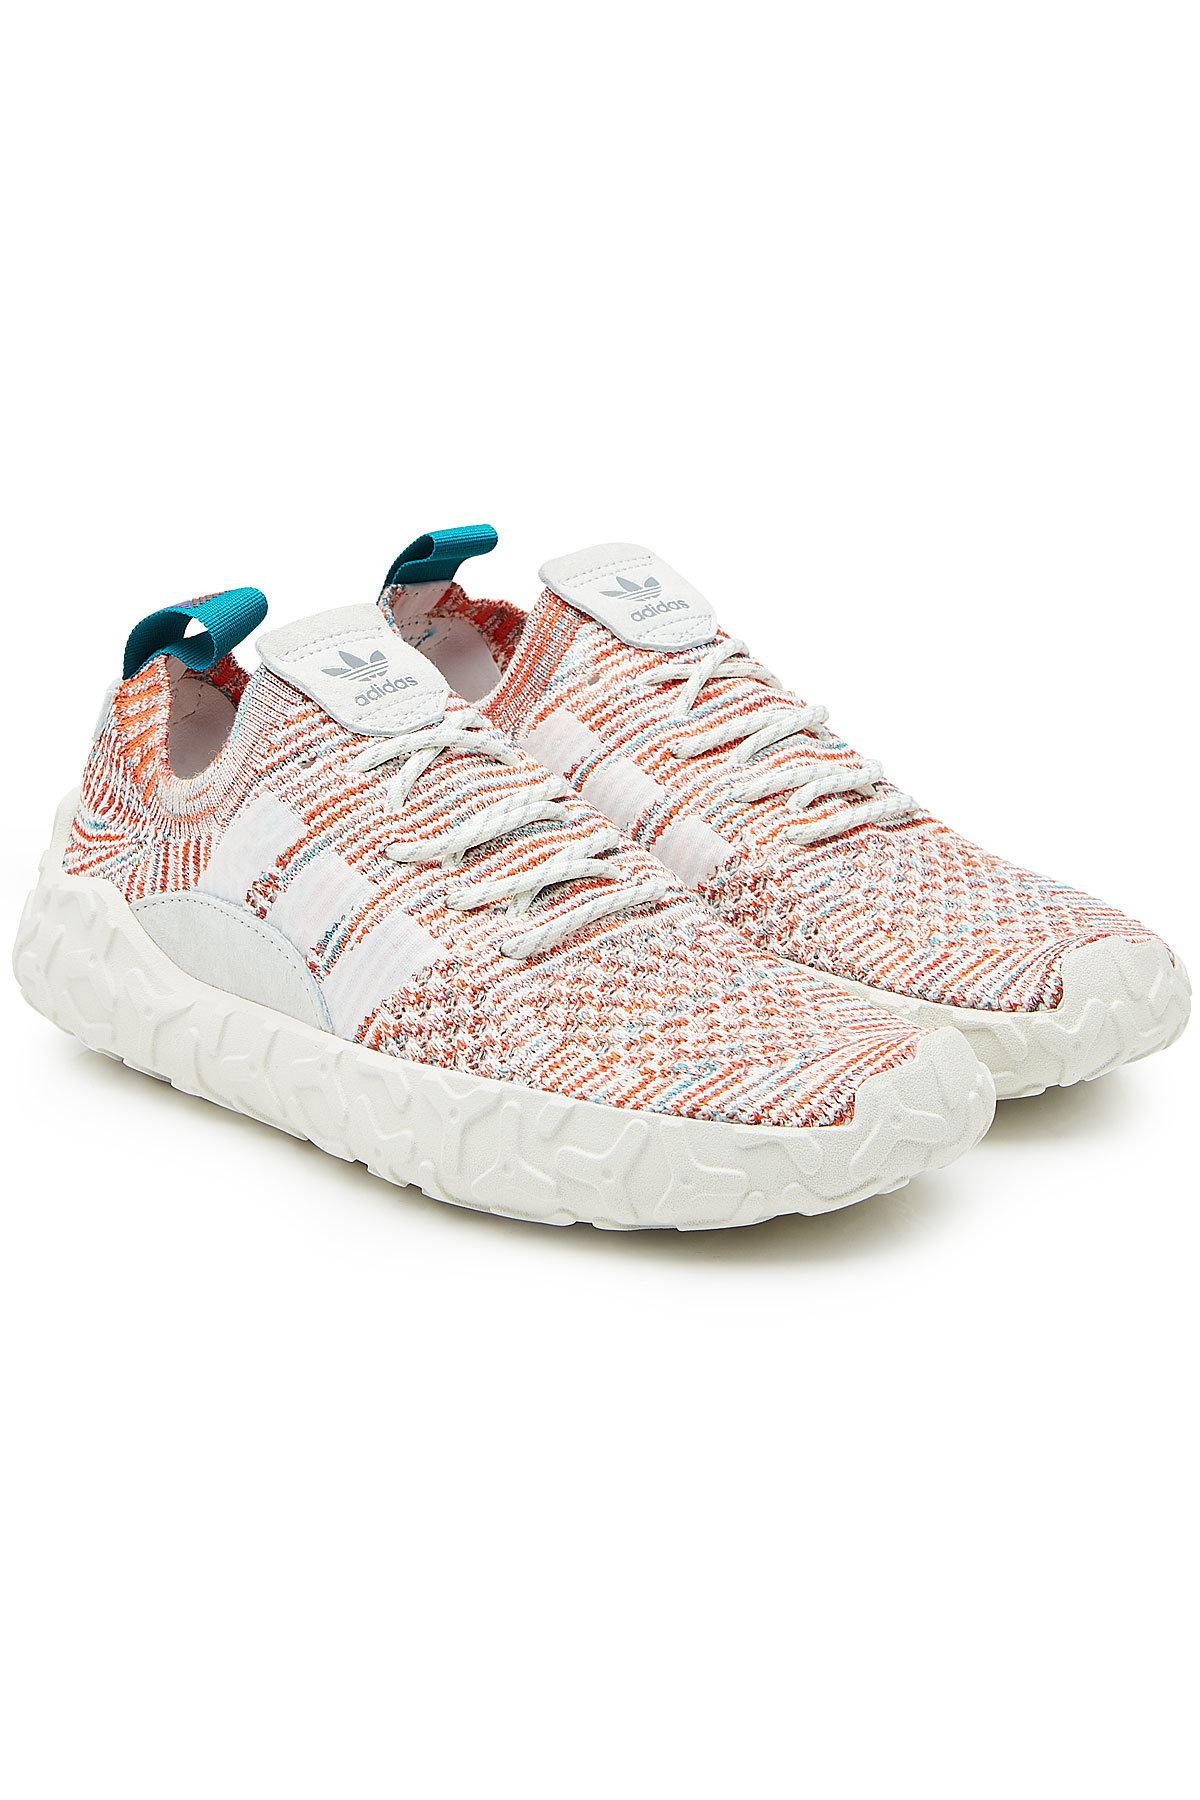 new product 19021 8a6c6 adidas Originals Atric F22 Primeknit Sneakers for Men - Lyst